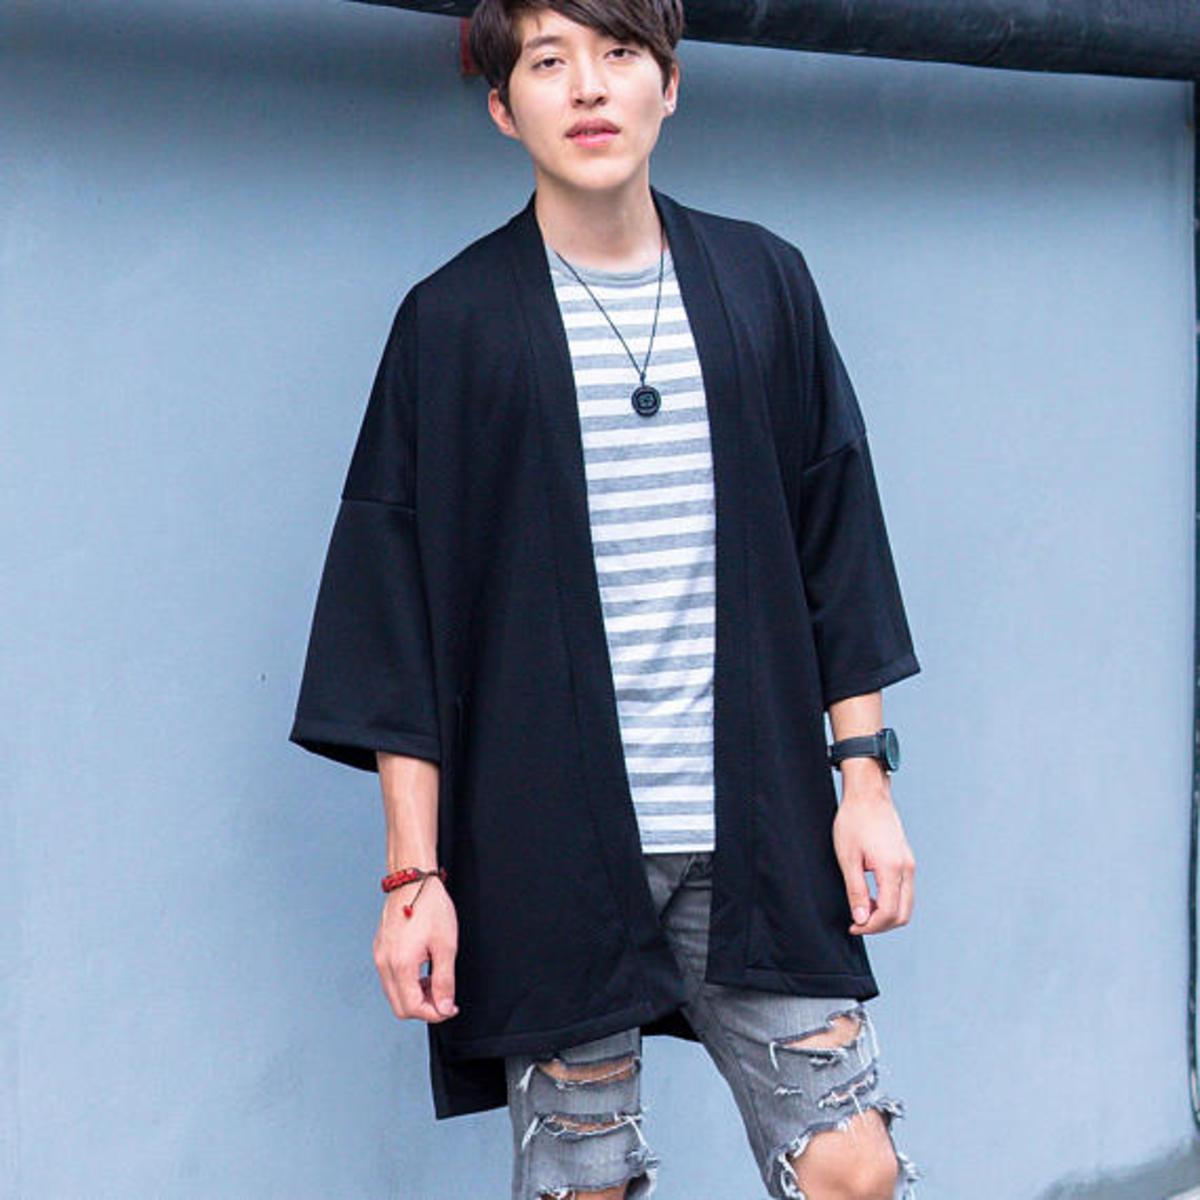 Several traditional Japanese garbs (such as the Kimono) have gotten modern iterations to fit with the more modern feel and style of Japan and Japanese streetwear.